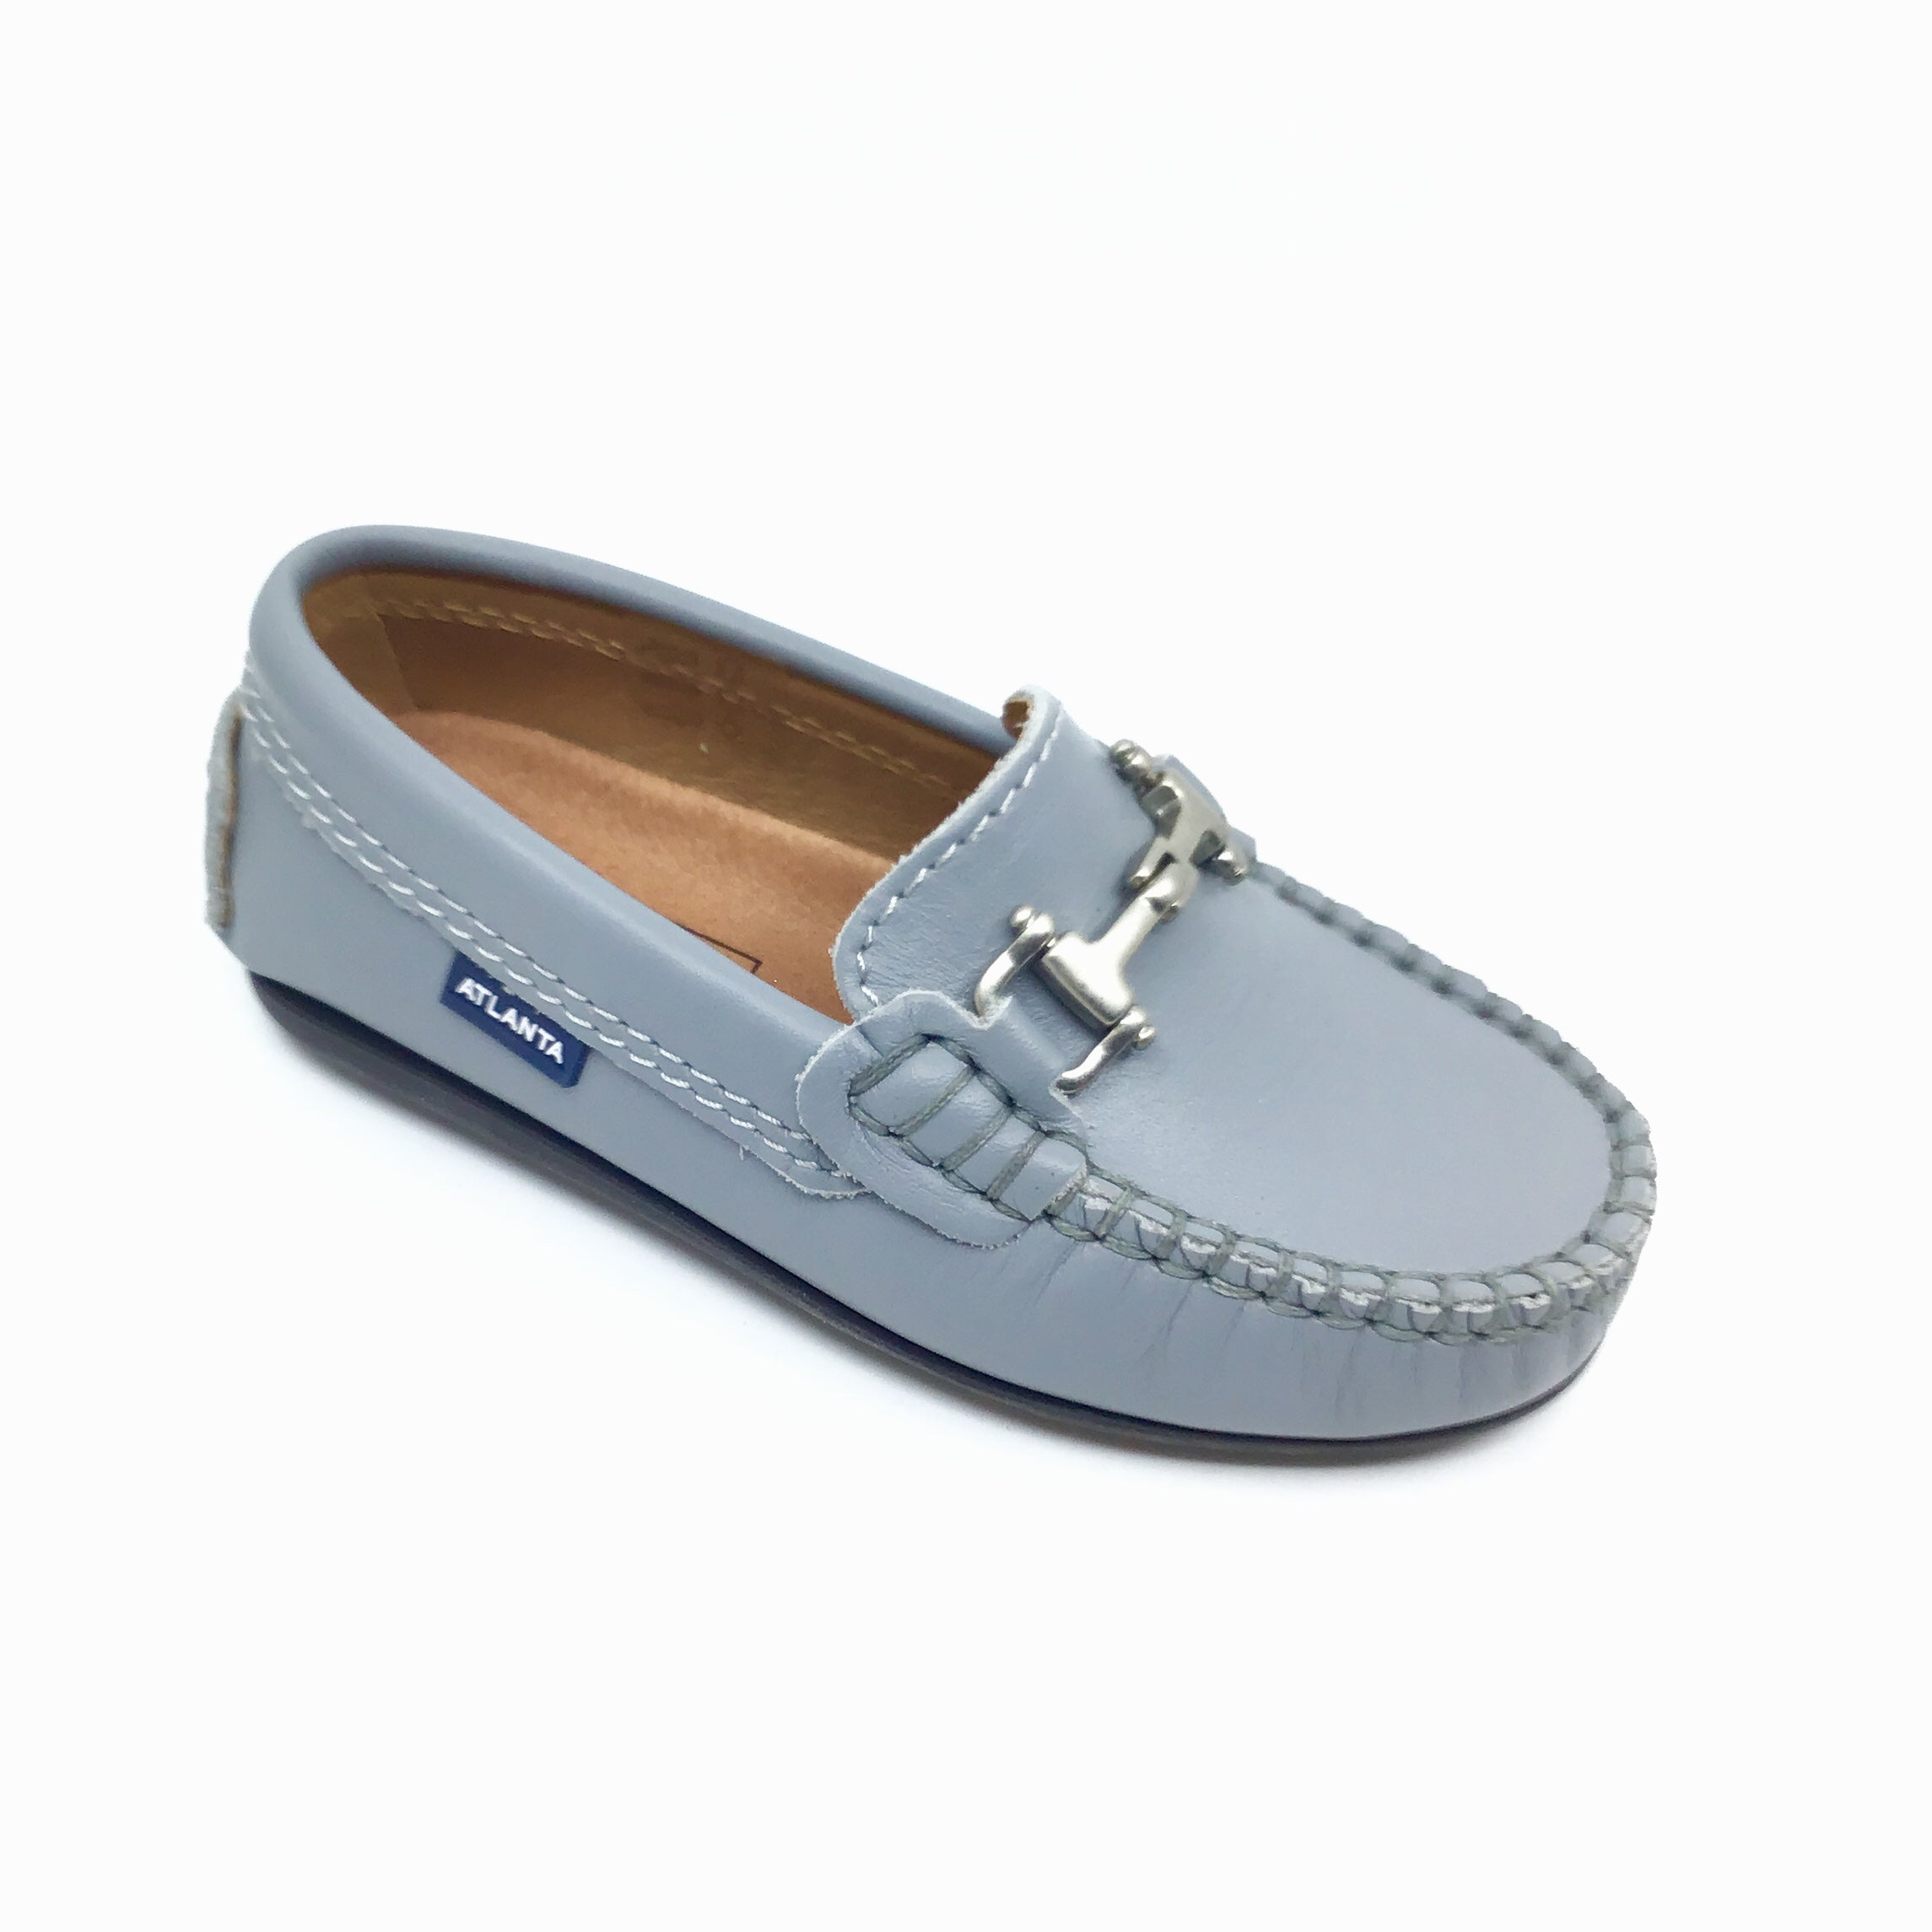 Atlanta Gray Loafer with Chain